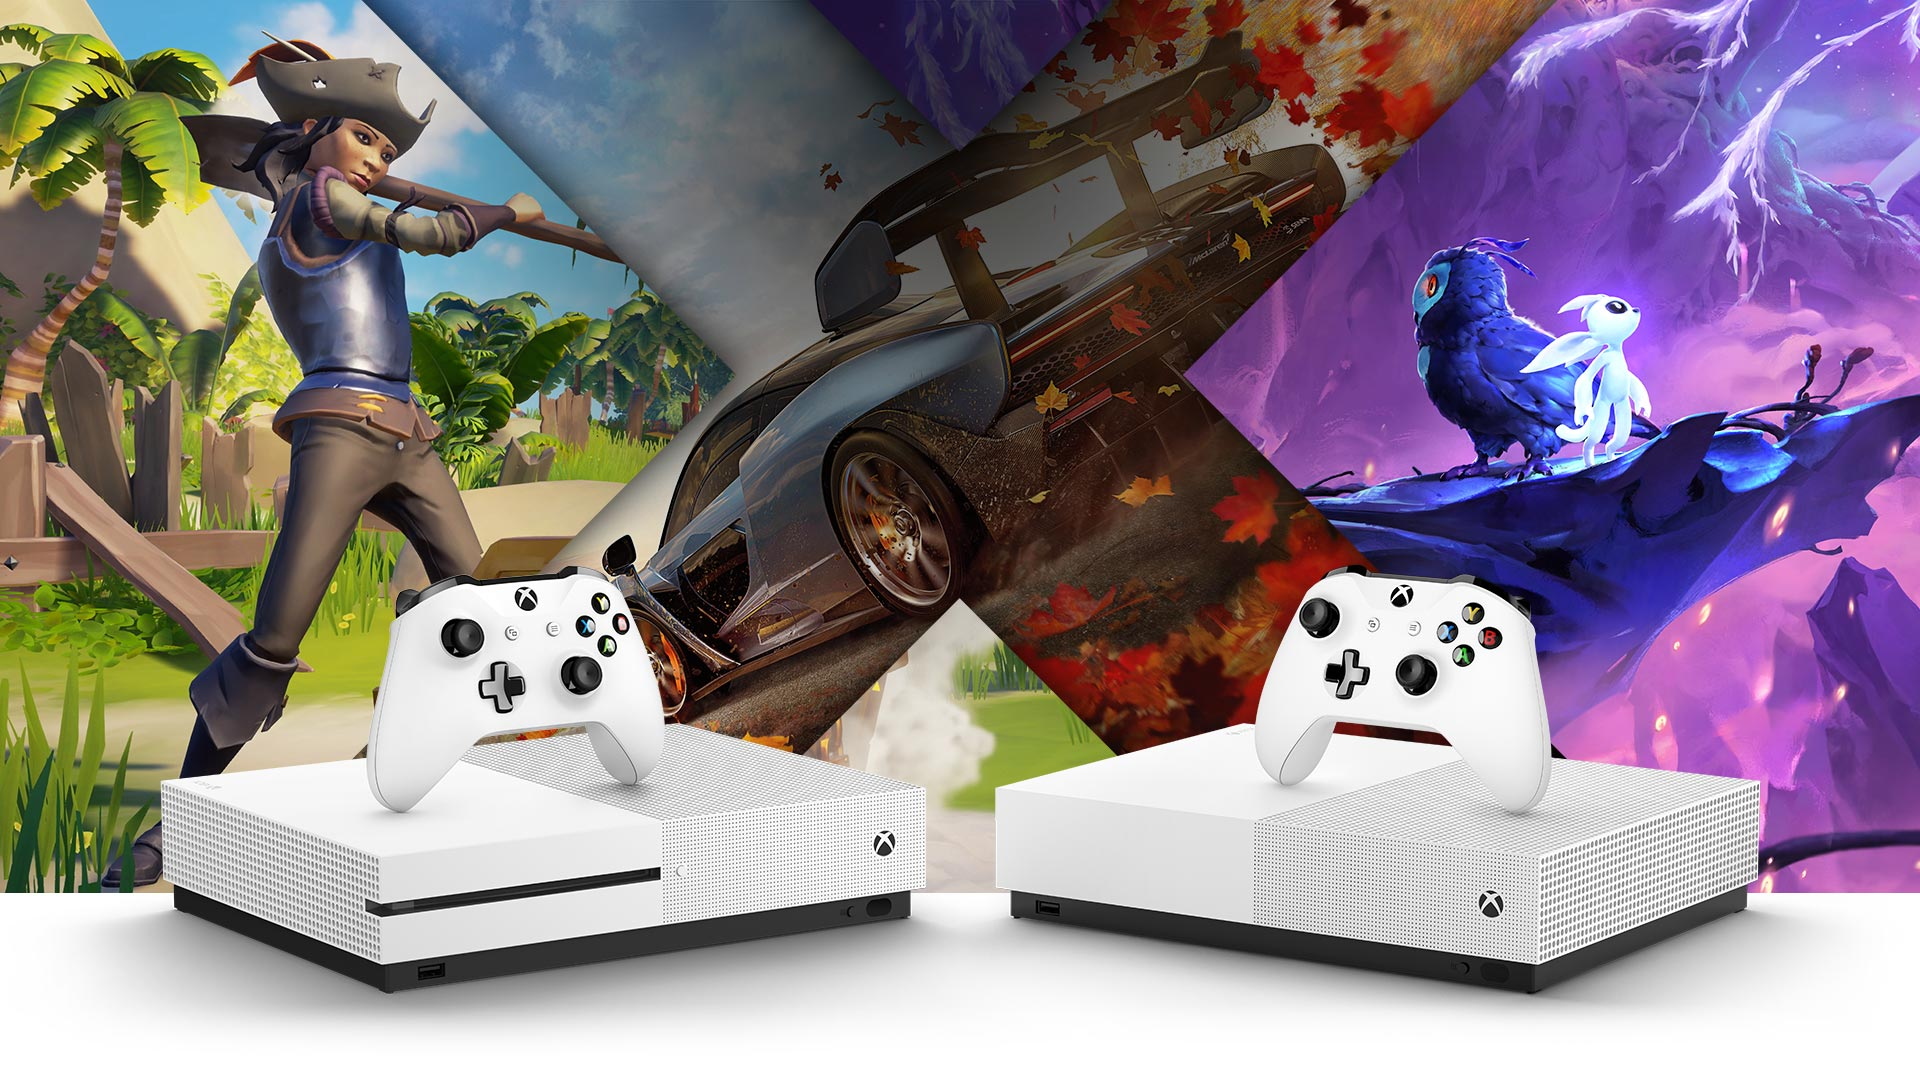 Xbox One S og Xbox One S All Digital Edition sett forfra omgitt av illustrasjoner fra Sea of Thieves, Forza Horizon 4 og Ori and the Will of Wisps